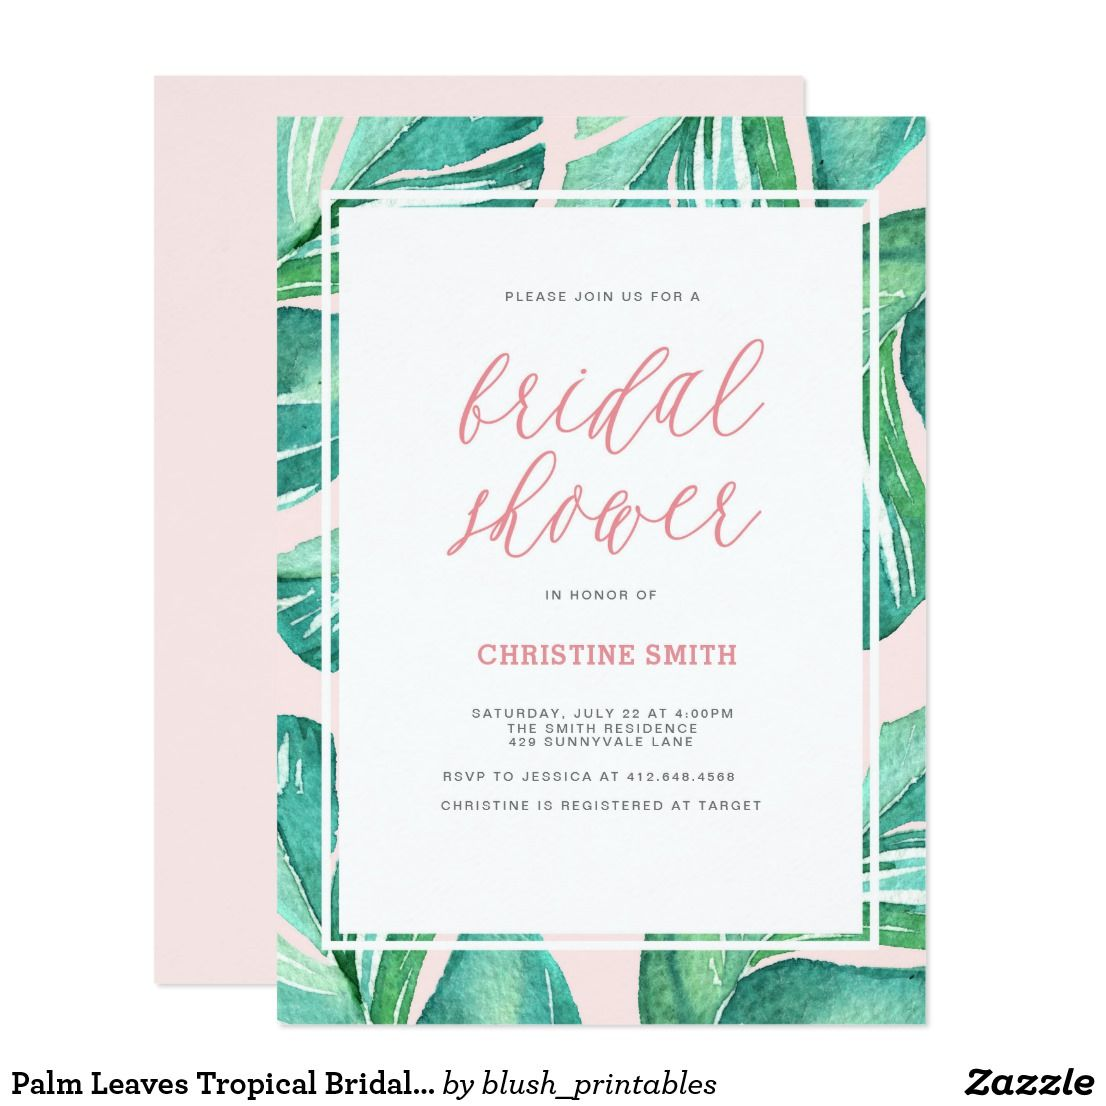 Palm Leaves Tropical Bridal Shower Invitation First comes love, then ...